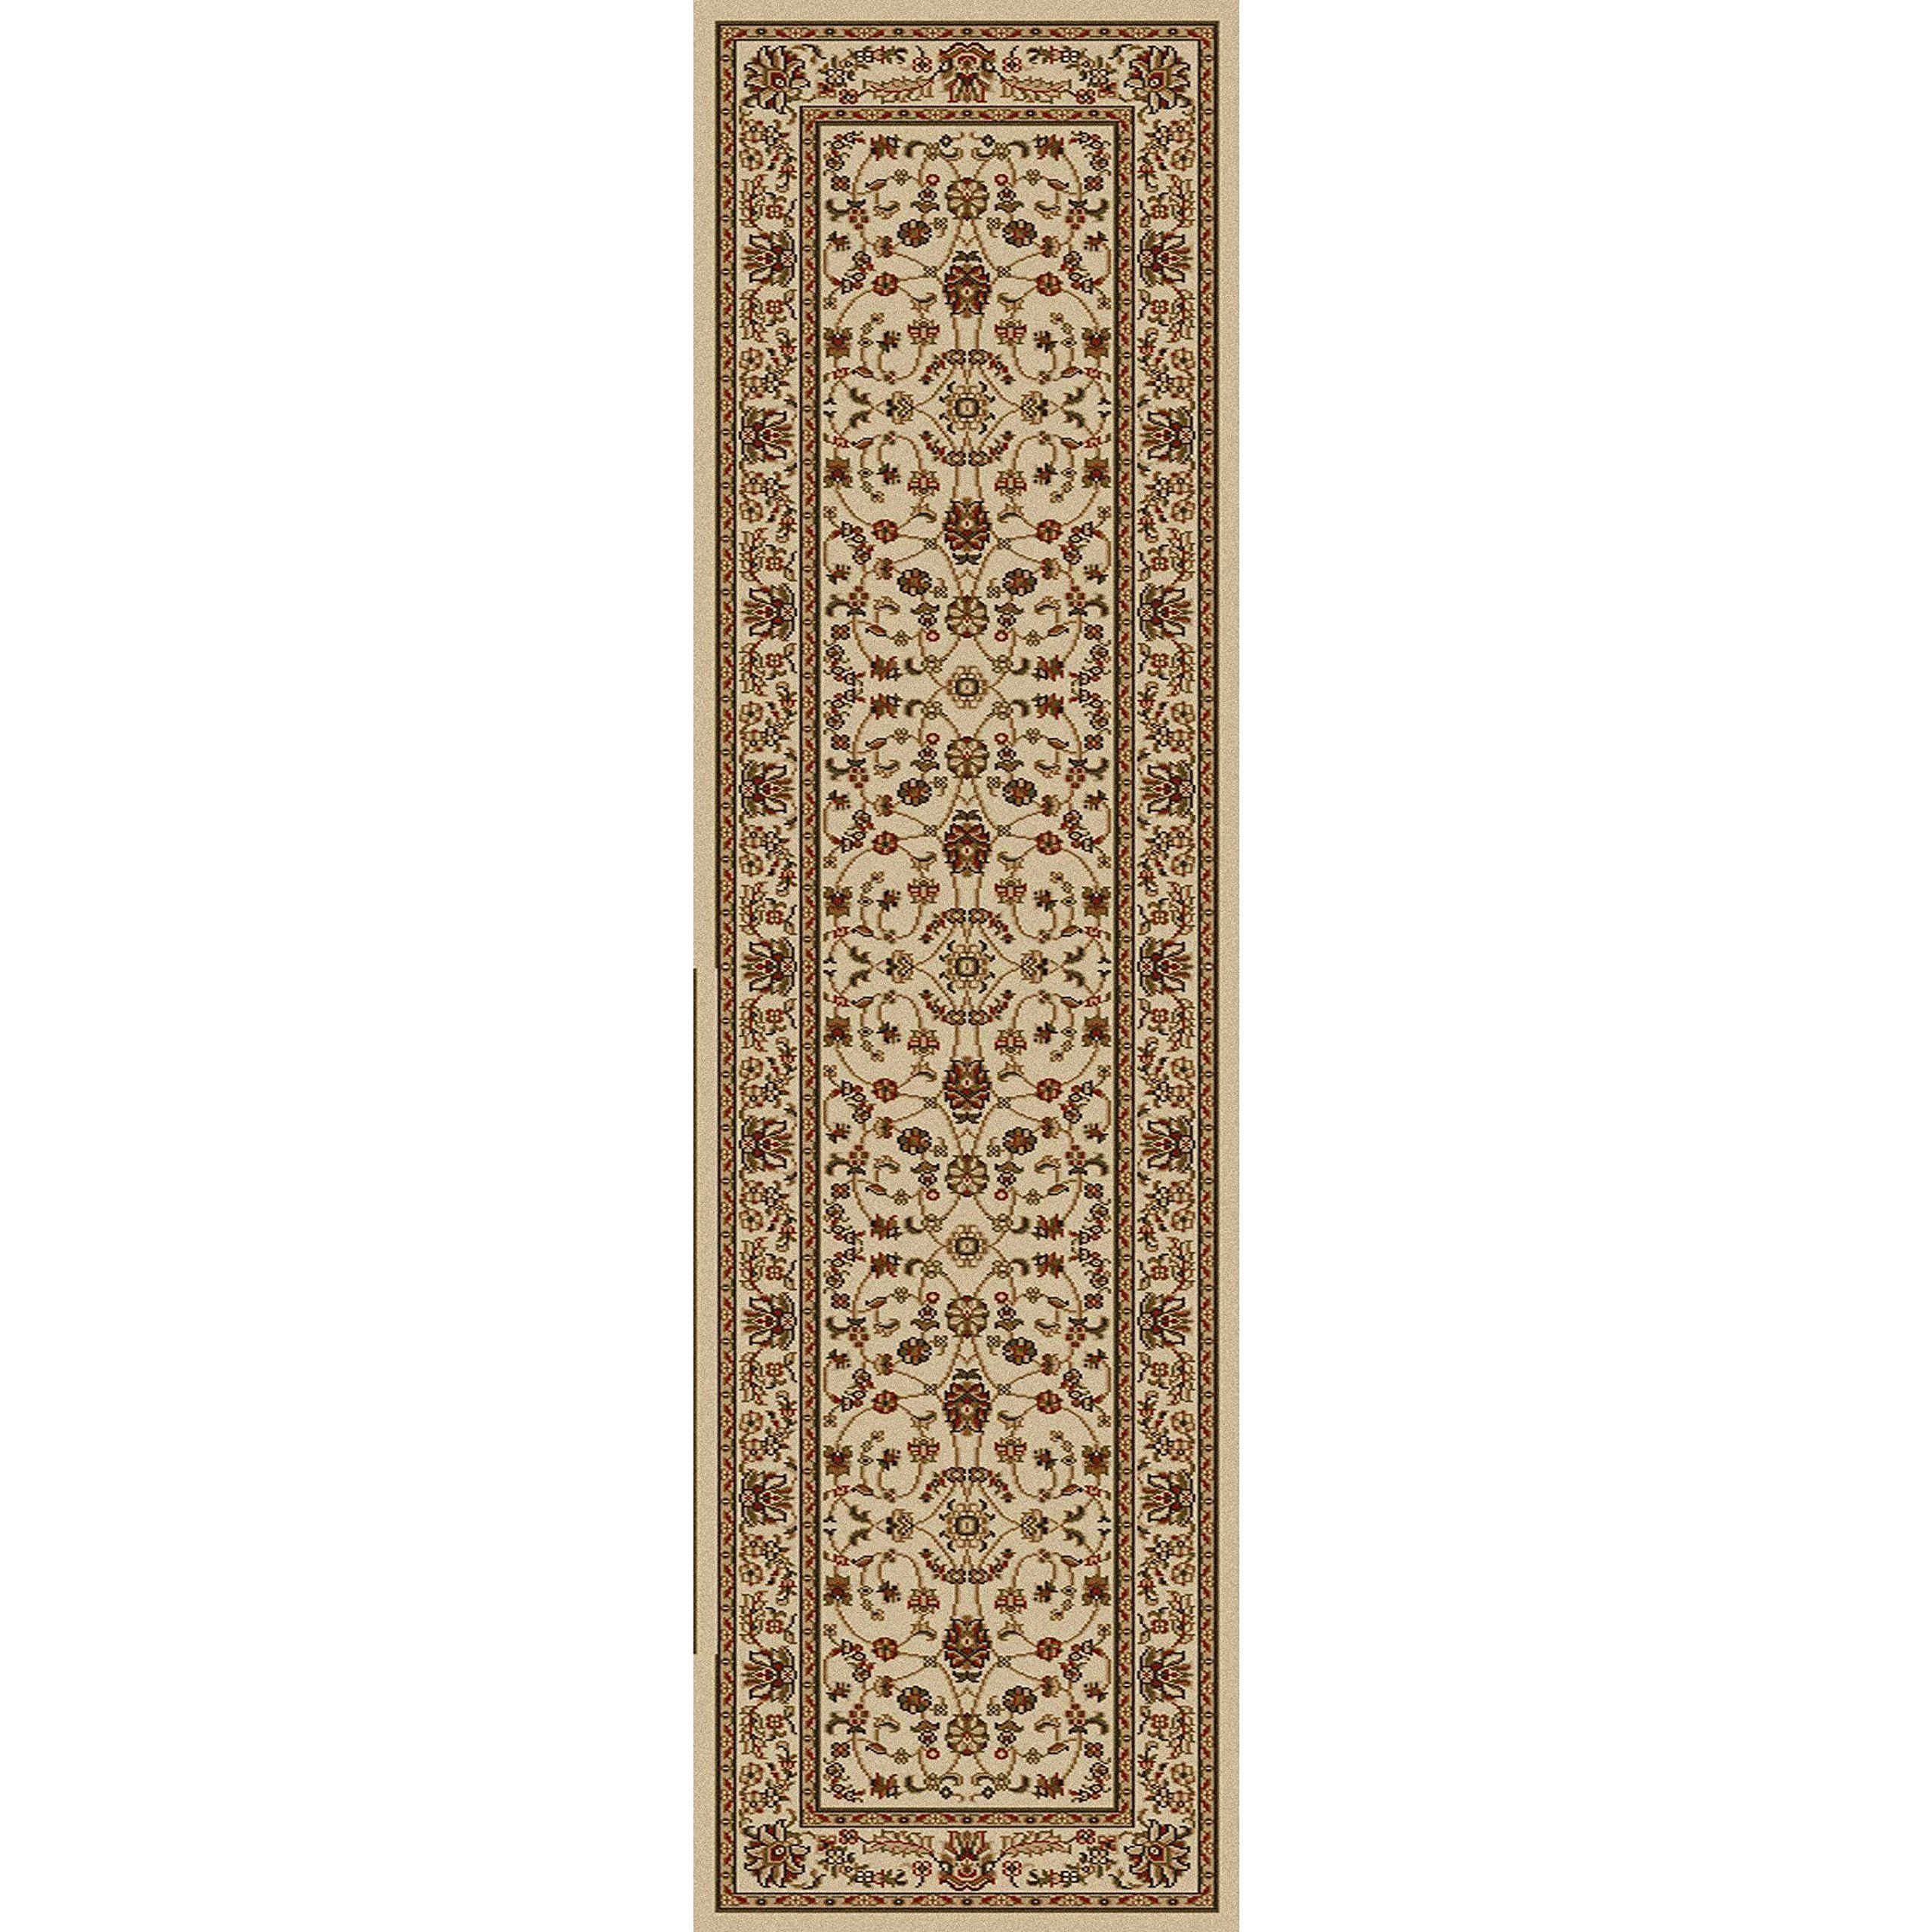 1 Piece 2'2'' x 7'7''ft Ivory Cream Orietnal Hallway Rug, Long Floral Carpet Entranceway French Country Classic Pattern Bordered Narrow Flooring Runner Style, Victorian Themed Royal Vintage, Olefin